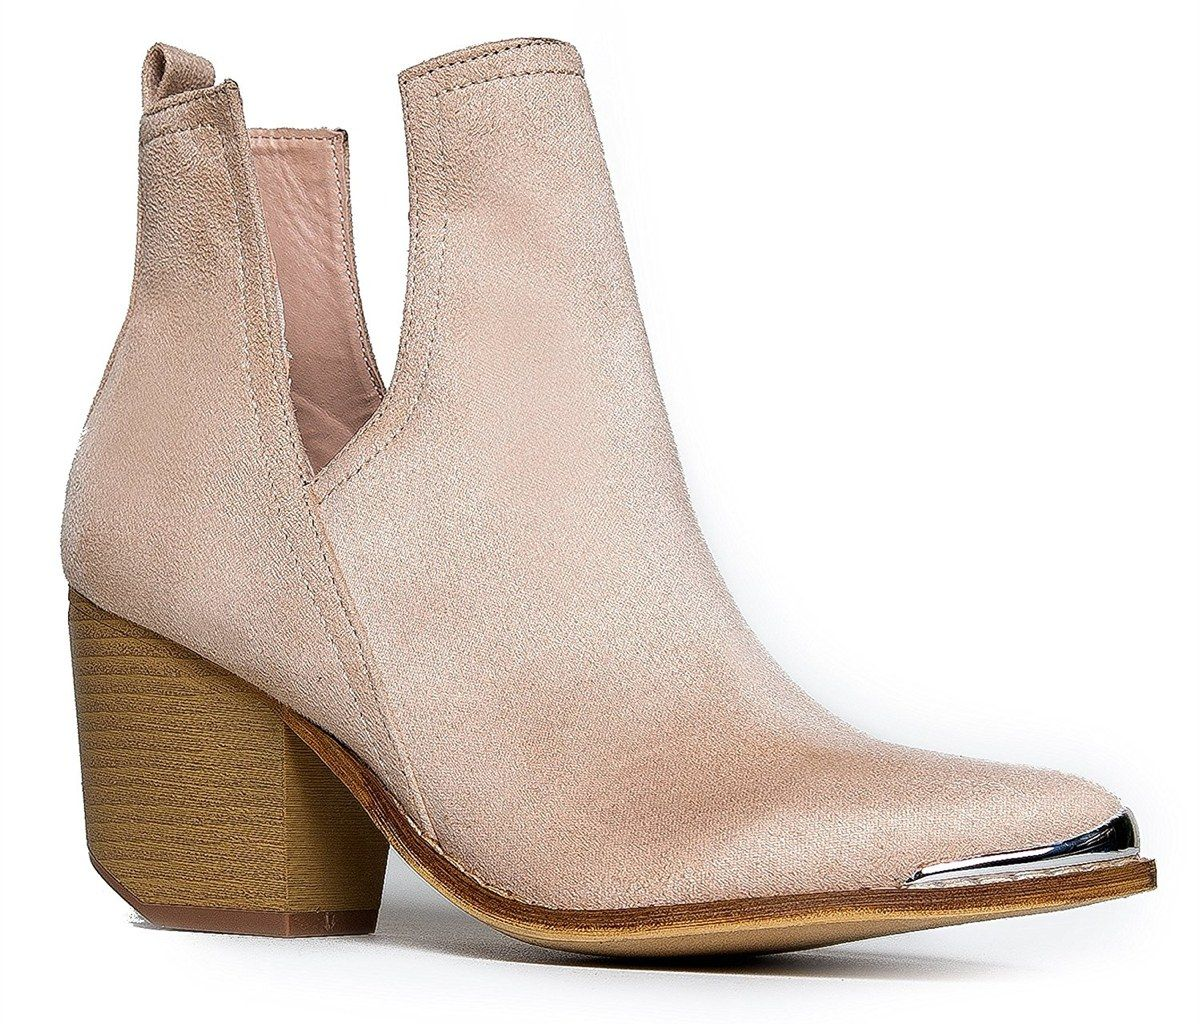 2017.01.20 Work-Appropriate Winter Boots - MI IM Western Slip-On V-Cutout Stacked Heel Booties, $54, amazon.com*